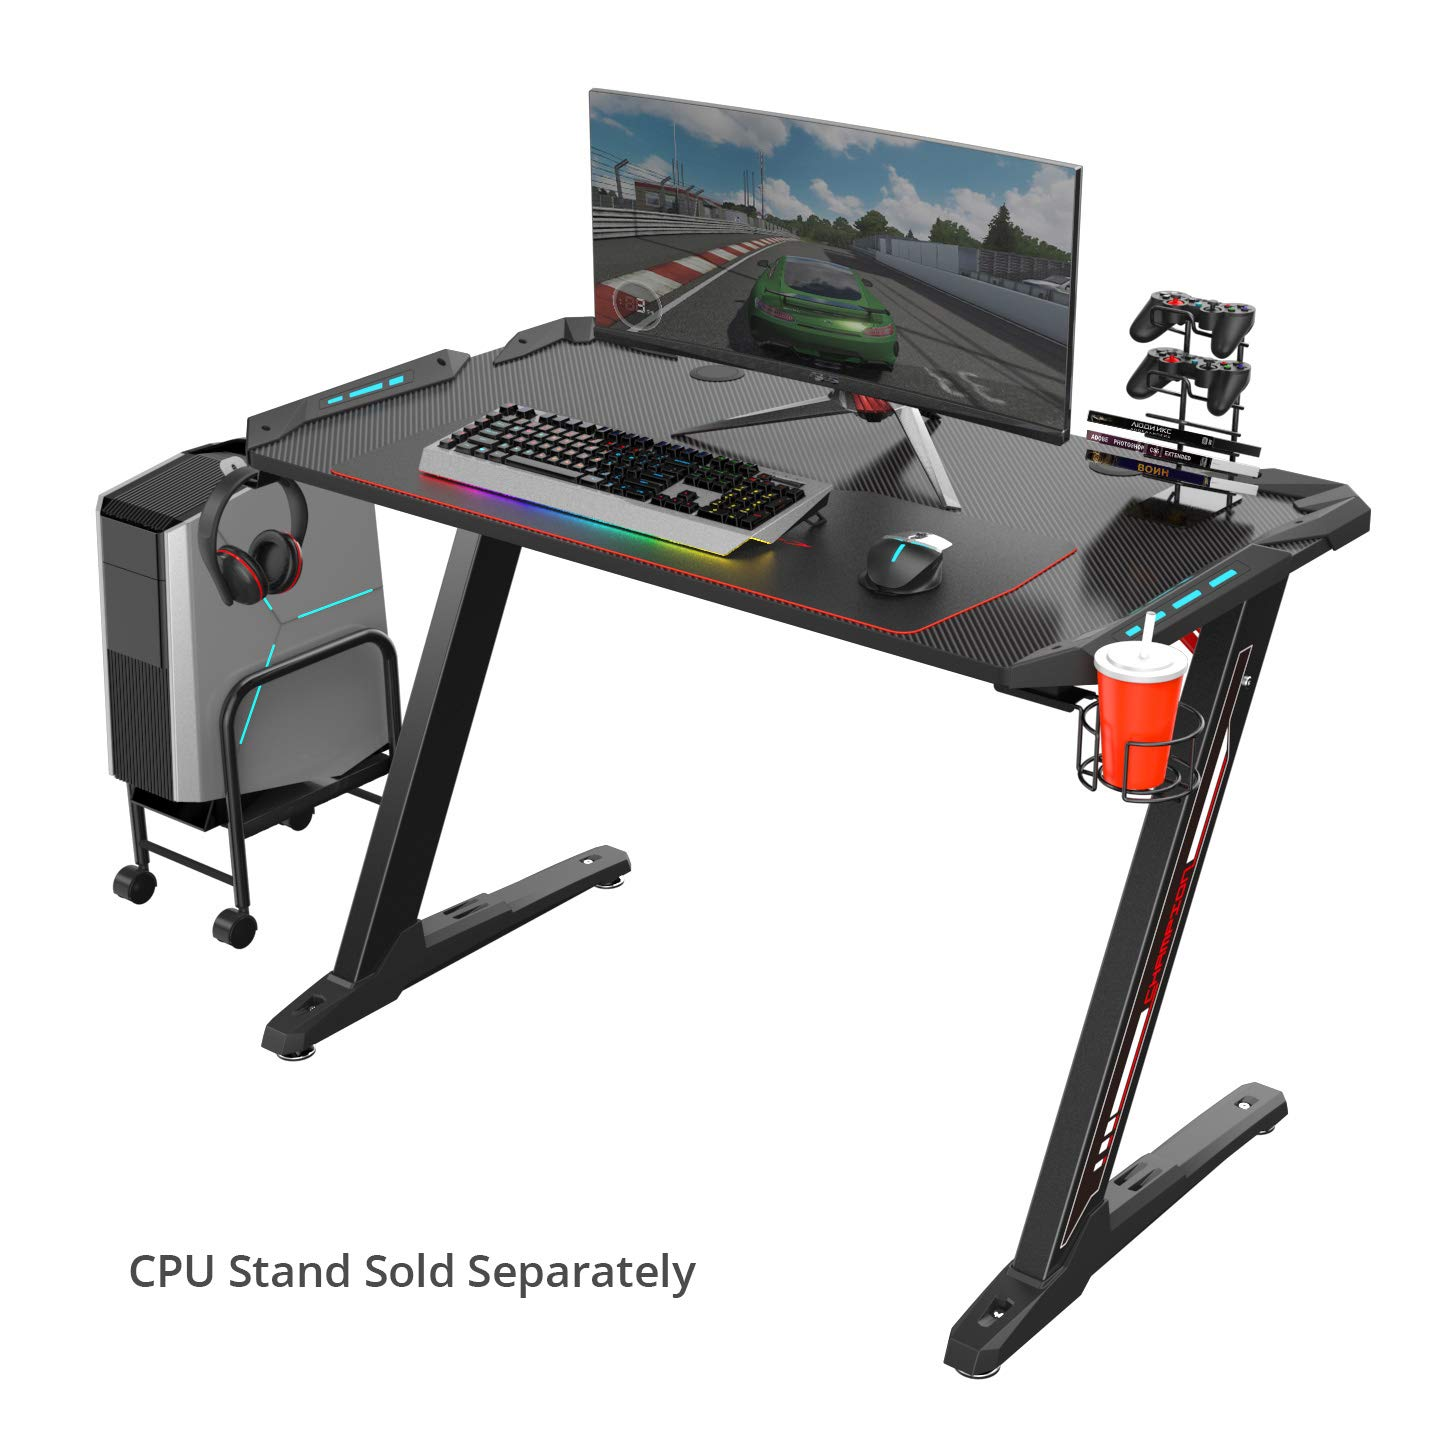 25 Best Gaming Desks [ UPDATED 2020 ]- See this! Before you Buy